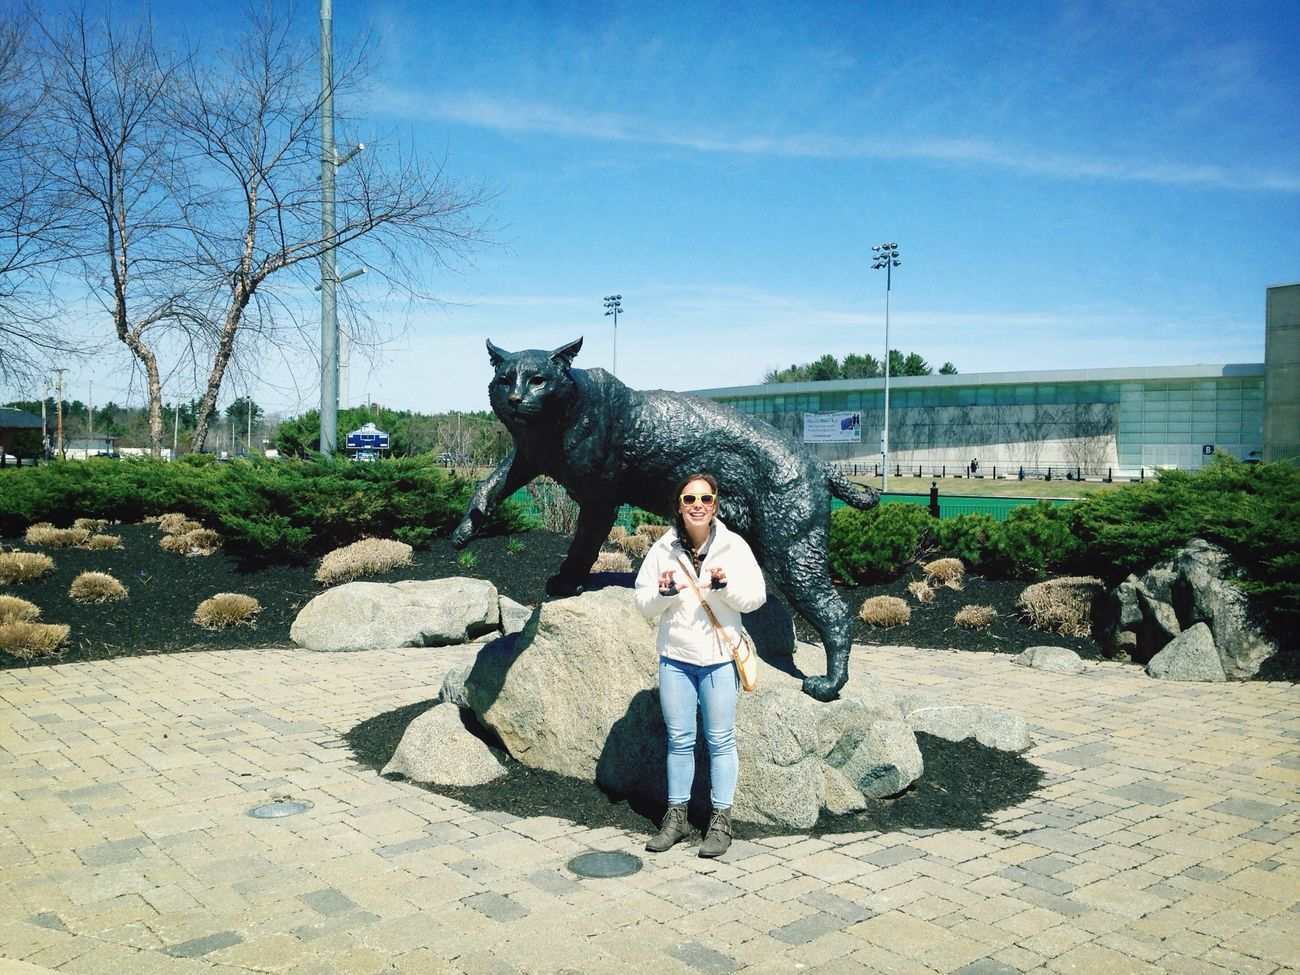 you gotta getcha head in the game-UNH wildcats!